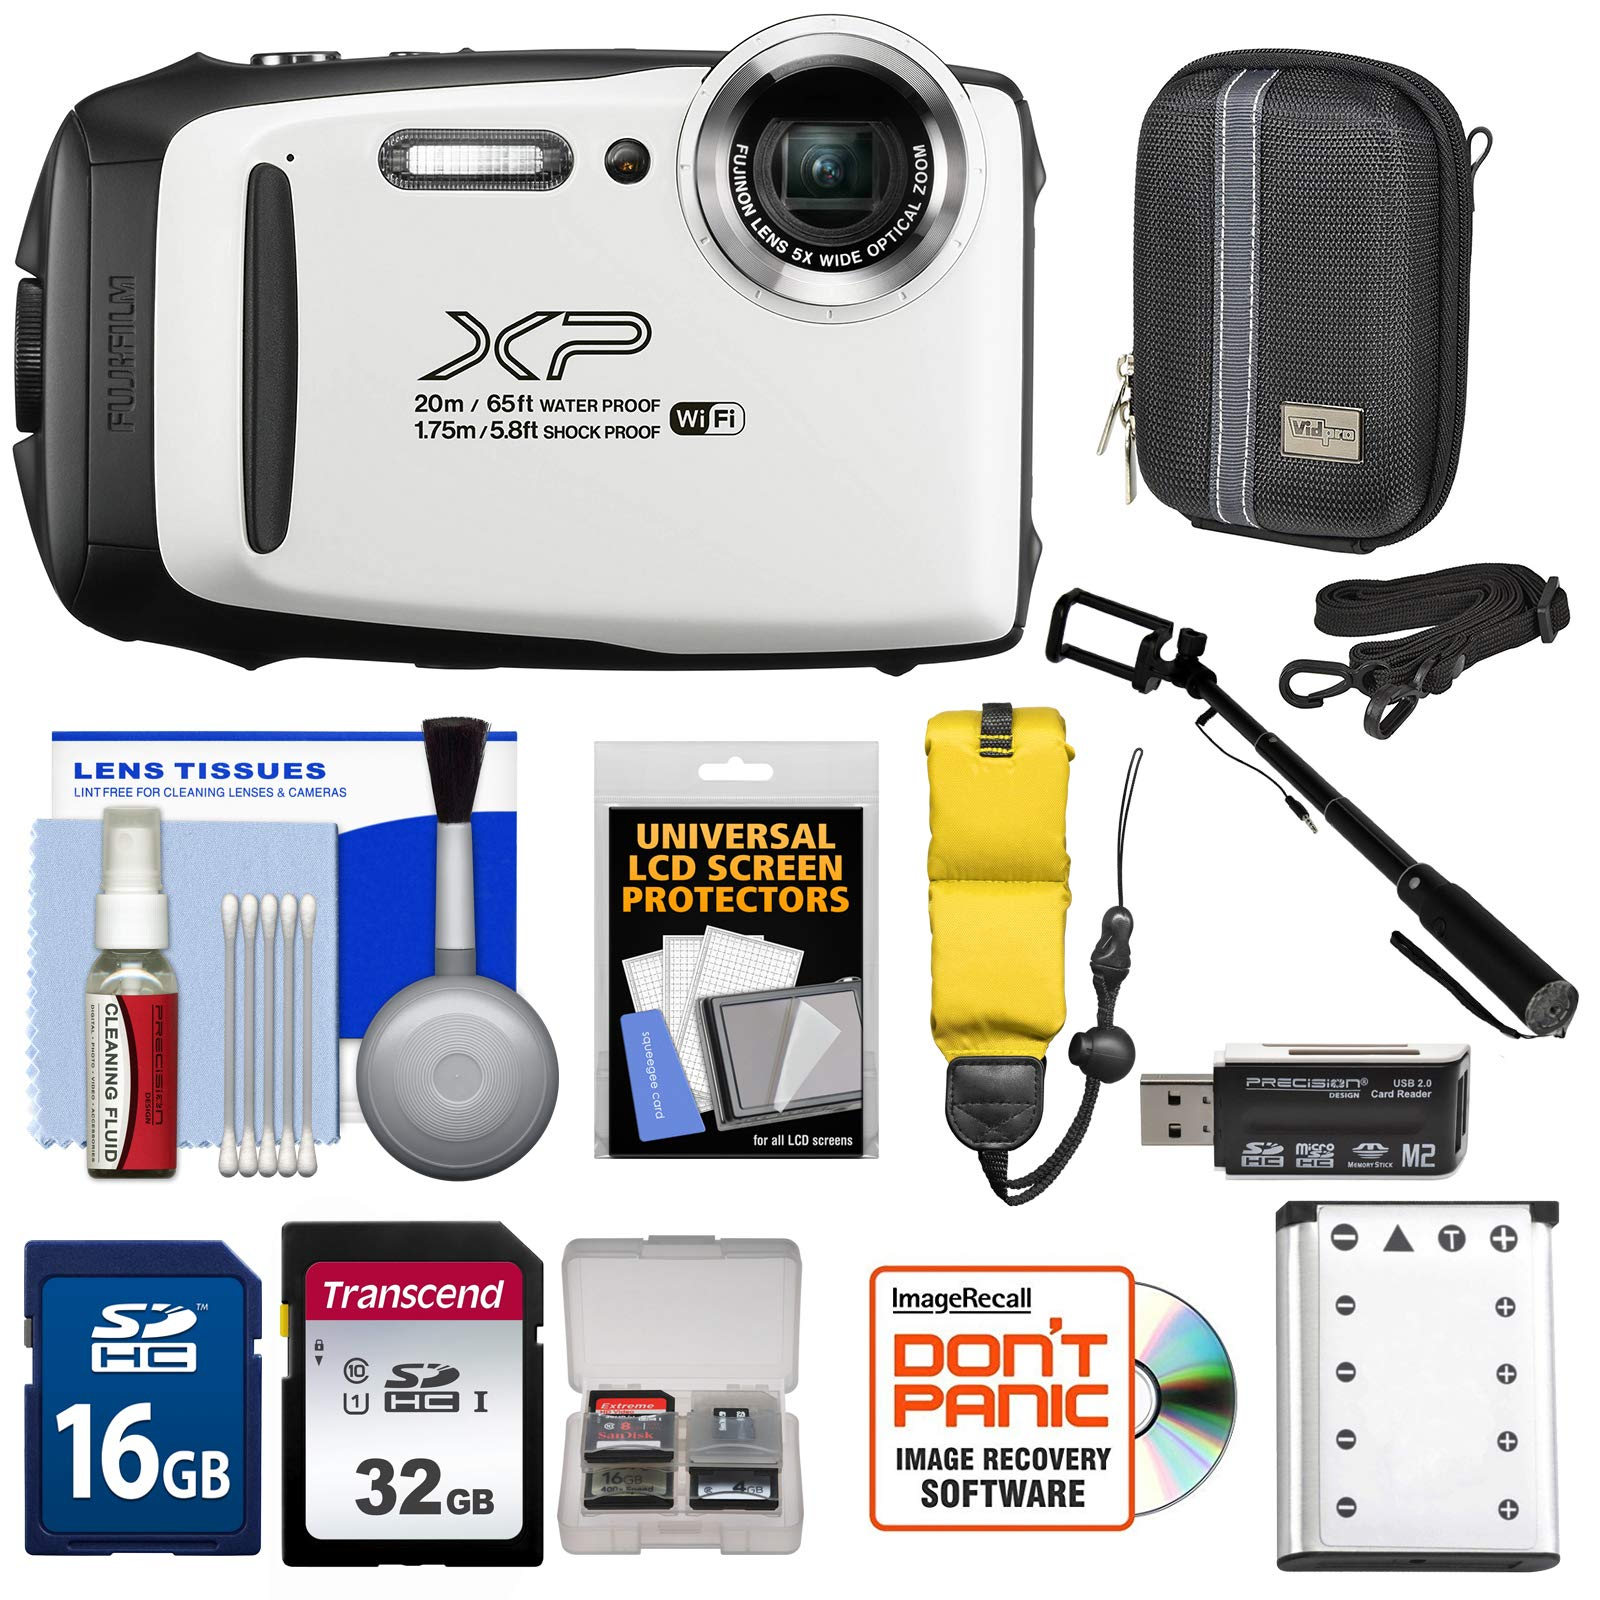 Fujifilm FinePix XP130 Shock & Waterproof Wi-Fi Digital Camera (White) with 32GB Card + Battery + Cases + Float Strap + Selfie Stick + Kit by Fujifilm